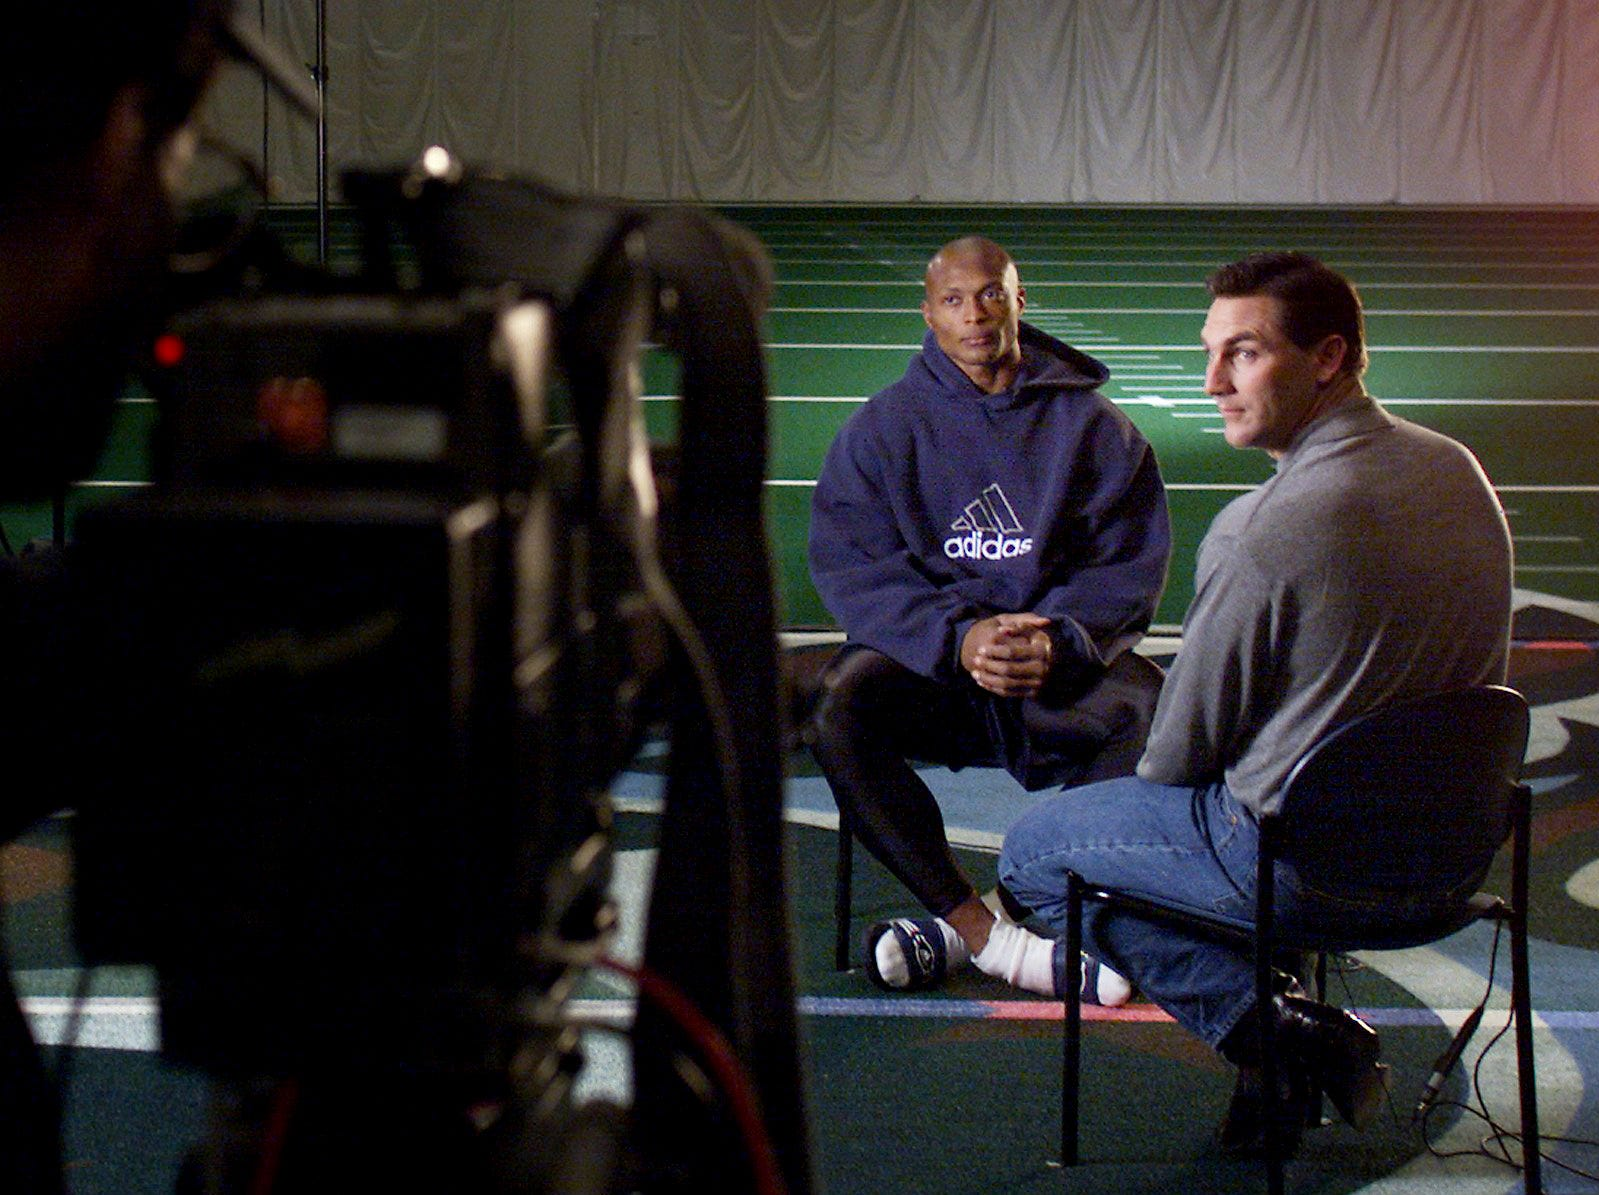 Eddie George of the Tennessee Titans does an interview with Craig James, right, from the NFL on CBS crew following practice Jan. 19, 2000 as the Titans prepare to face the Jacksonville Jaguars in the AFC championship game.